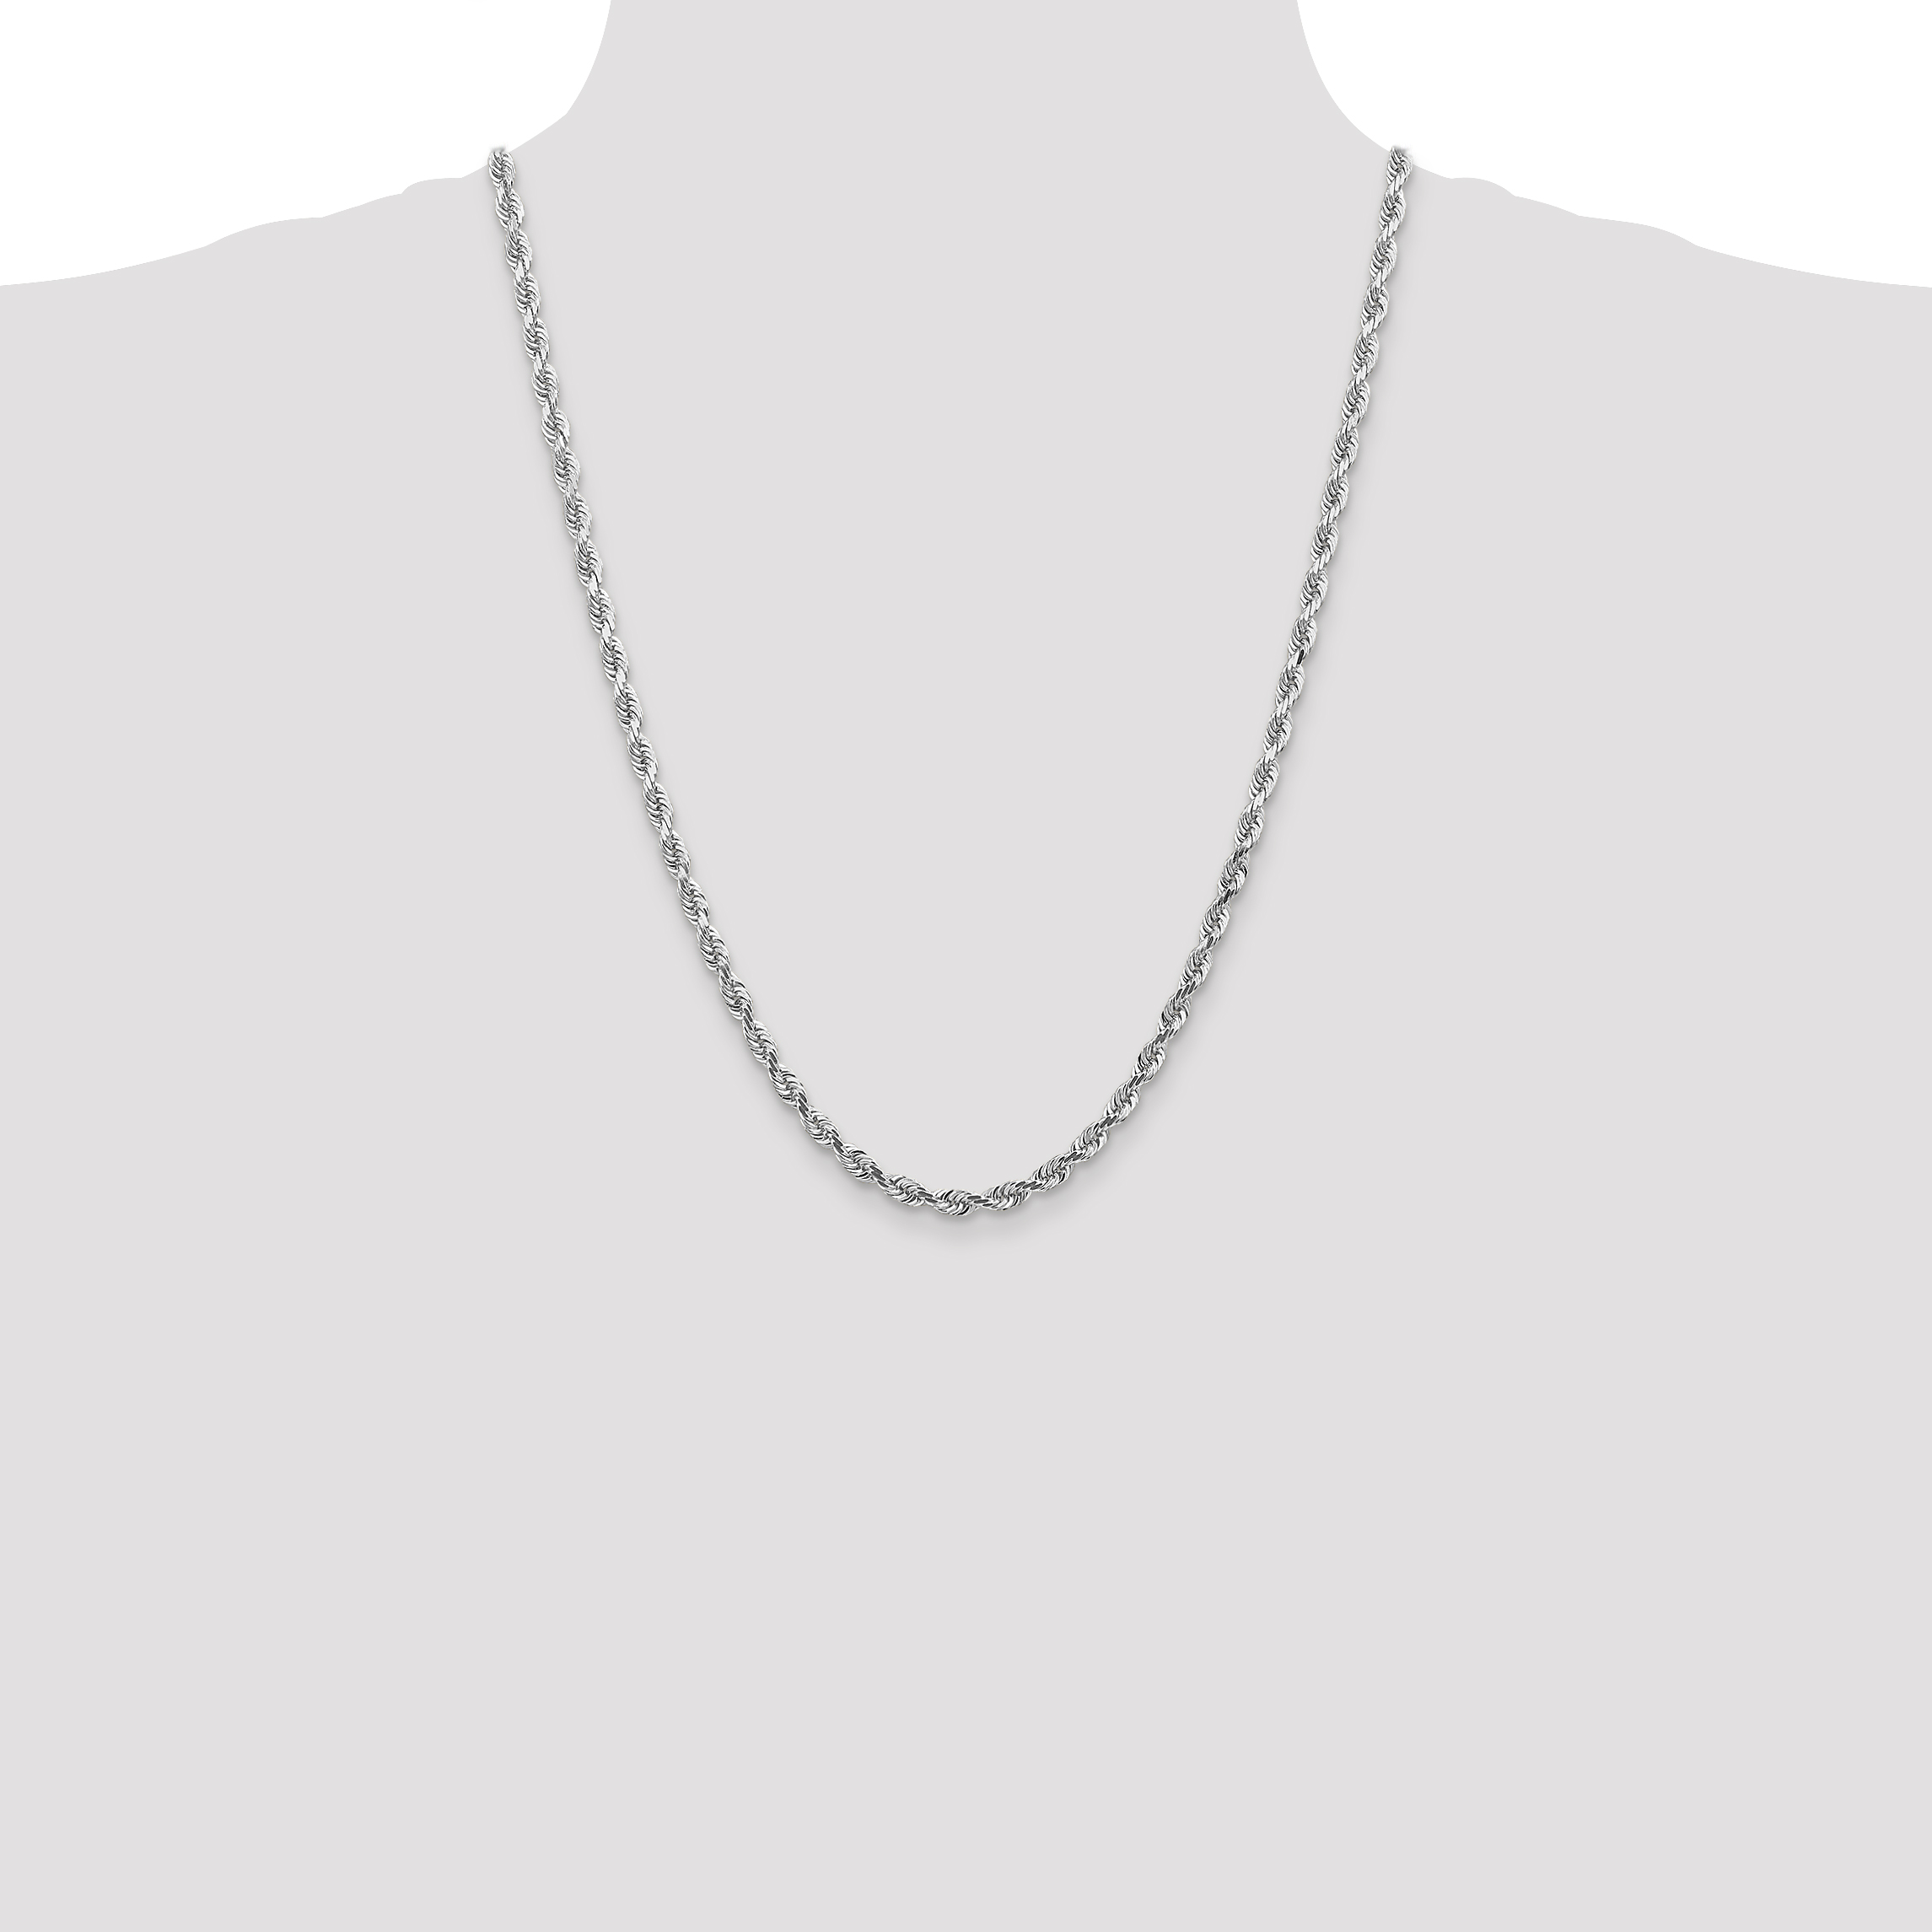 14k White Gold 4.5mm Quadruple Link Rope Chain Necklace 24 Inch Pendant Charm Handmade Fine Jewelry Gifts For Women For Her - image 2 de 5